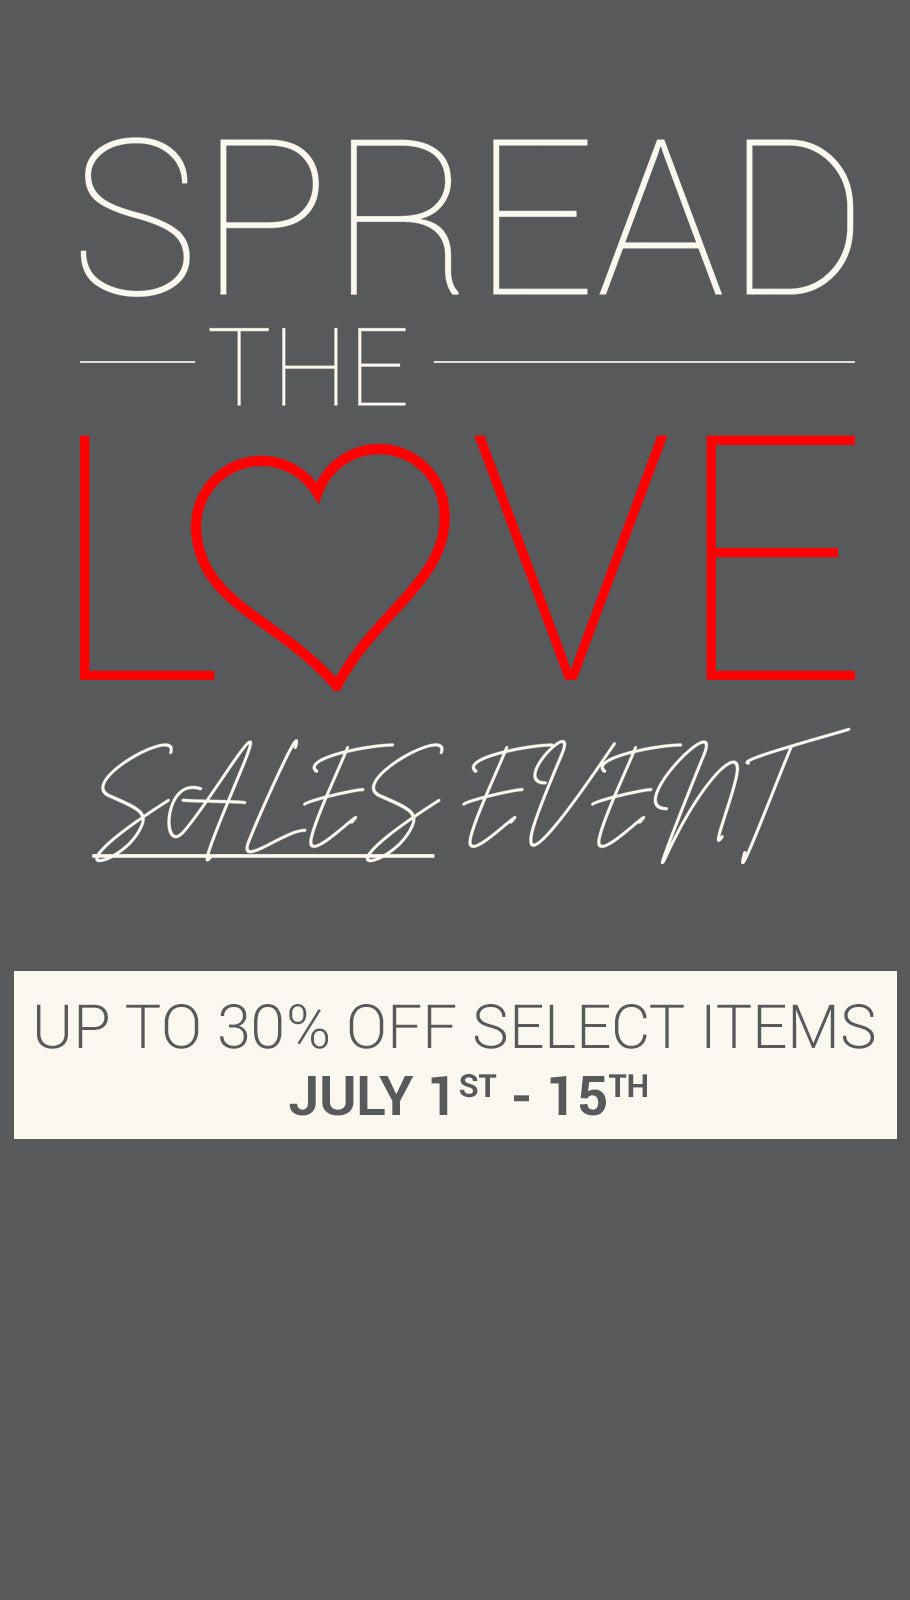 Spread the Love Sales Event